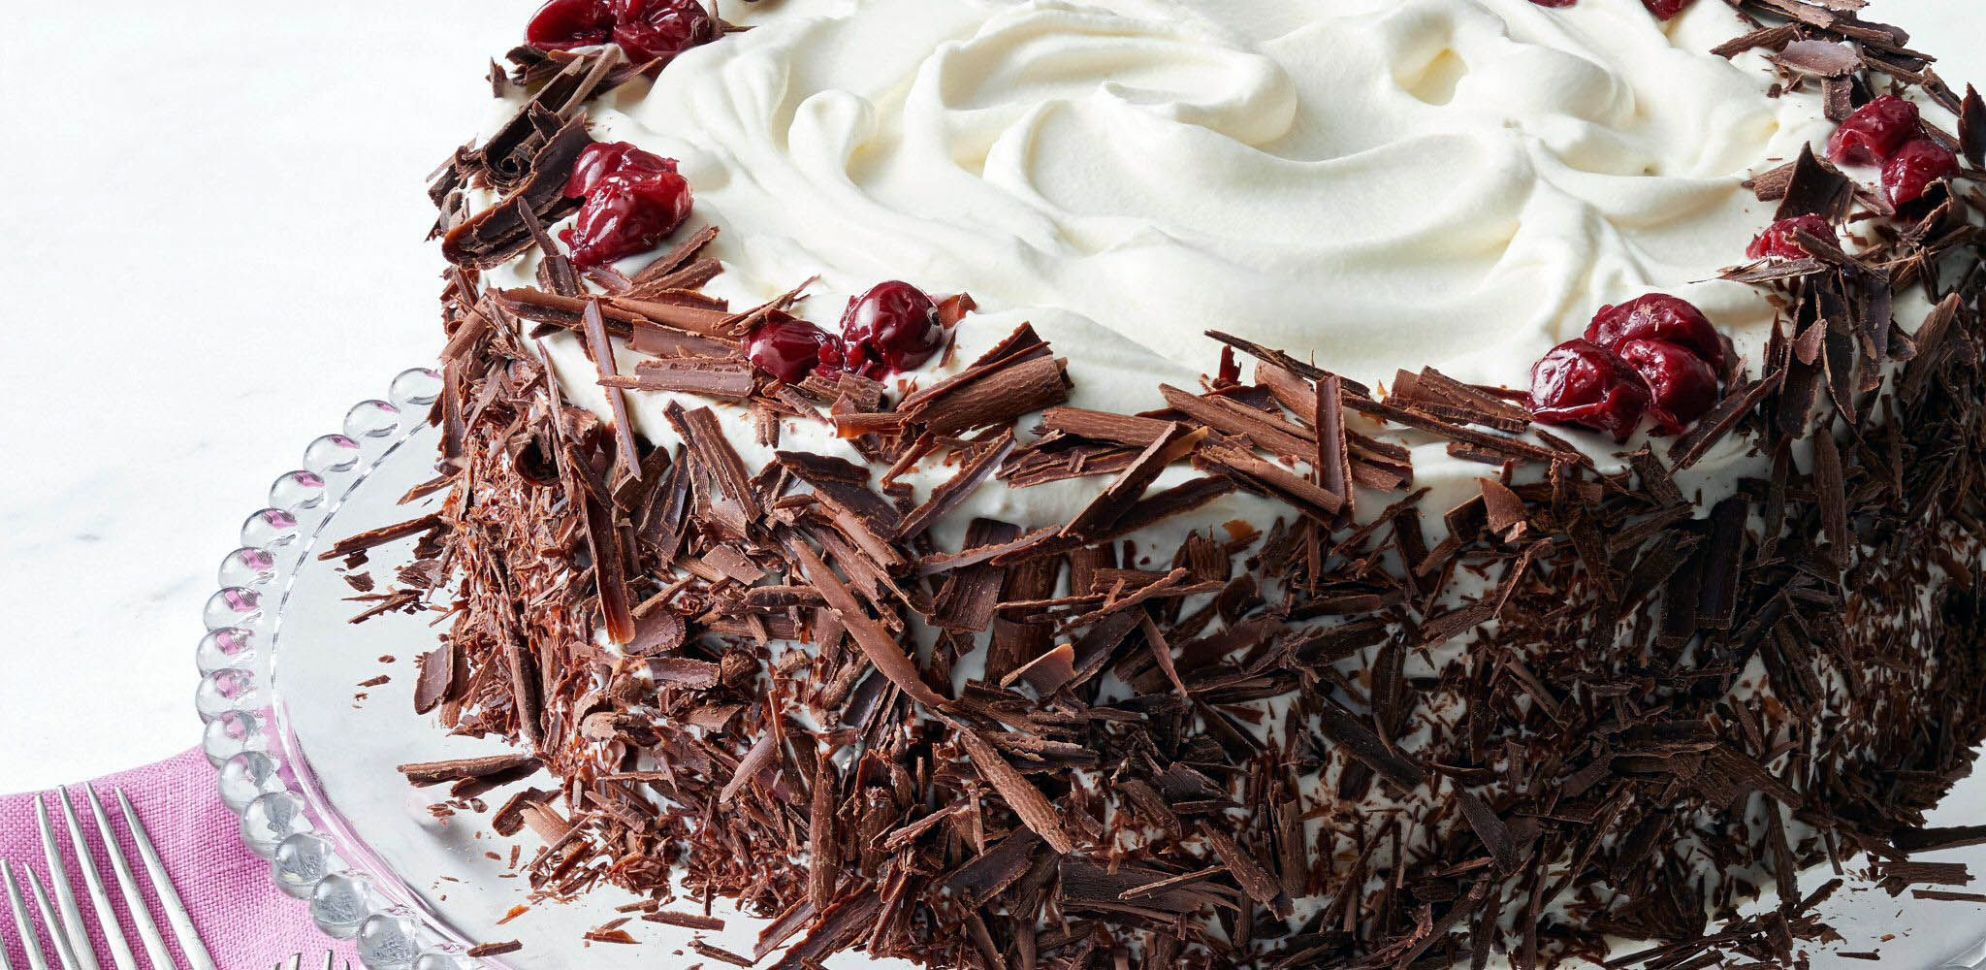 Nice black forest cake recipe 11 x 11 Browse our recipe selection ..